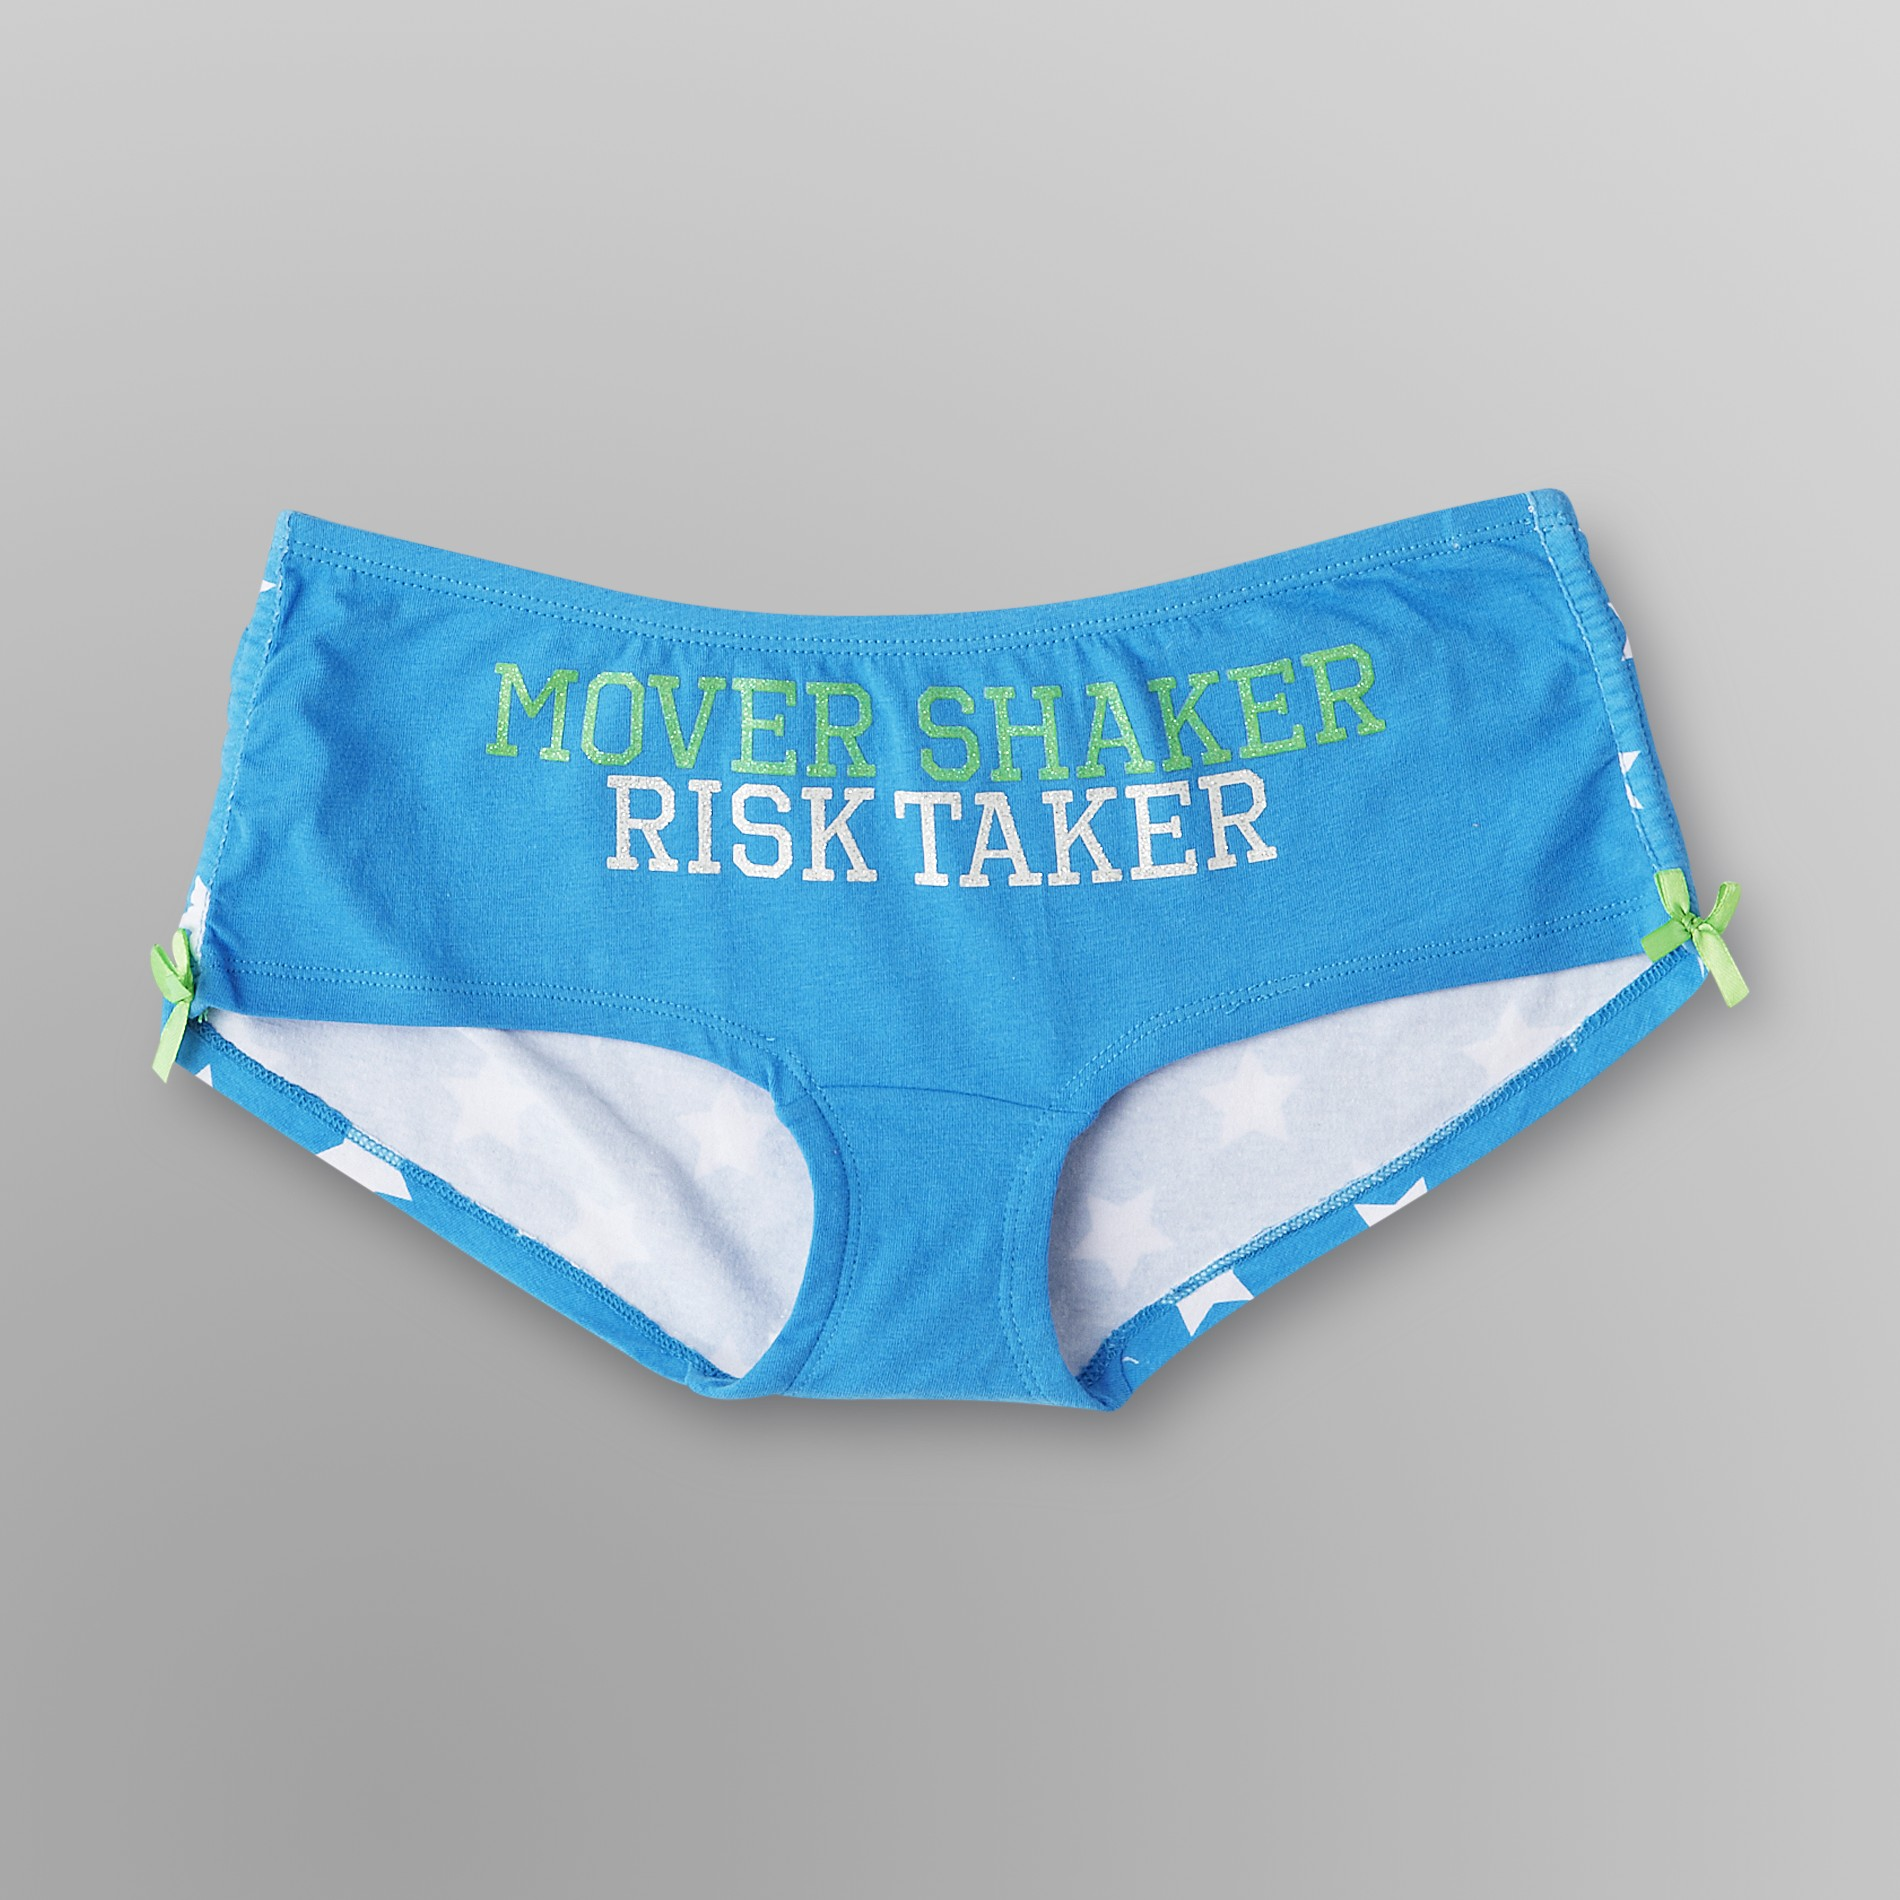 Joe Boxer Women's Hipster Panties - Risk Taker at Kmart.com